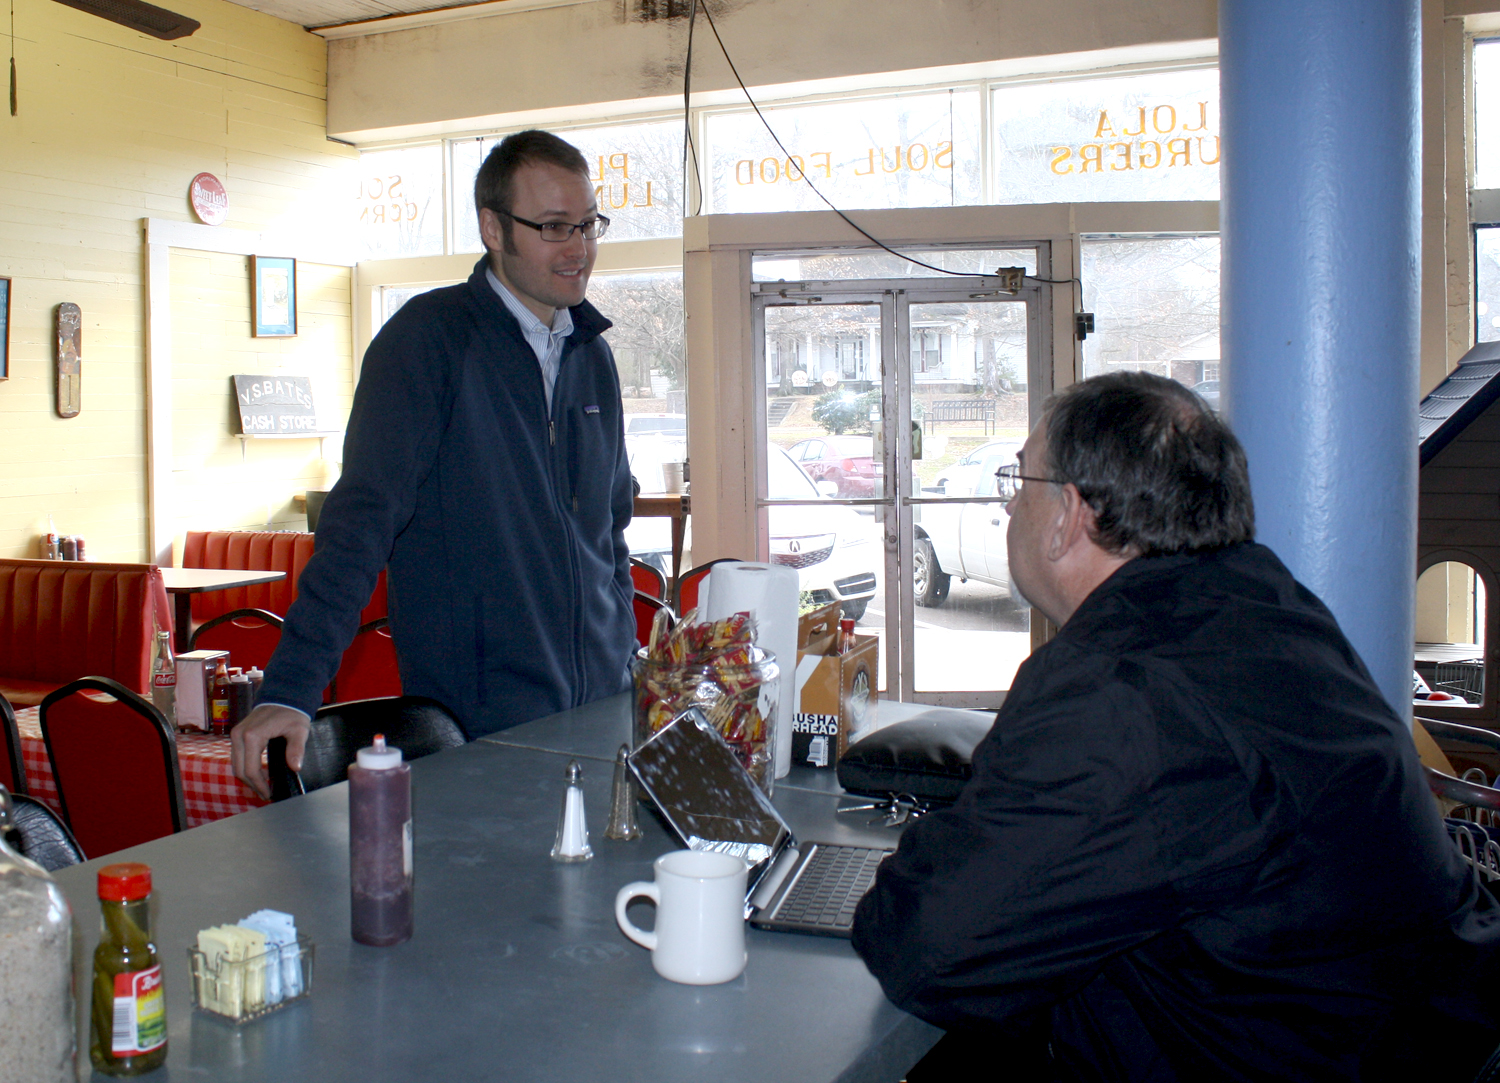 Kagen Coughlin (left) chats with Kevin Guyer at B.T.C. Old Fashioned Grocery on Wednesday, Jan. 26. Photo by Jeff McVay